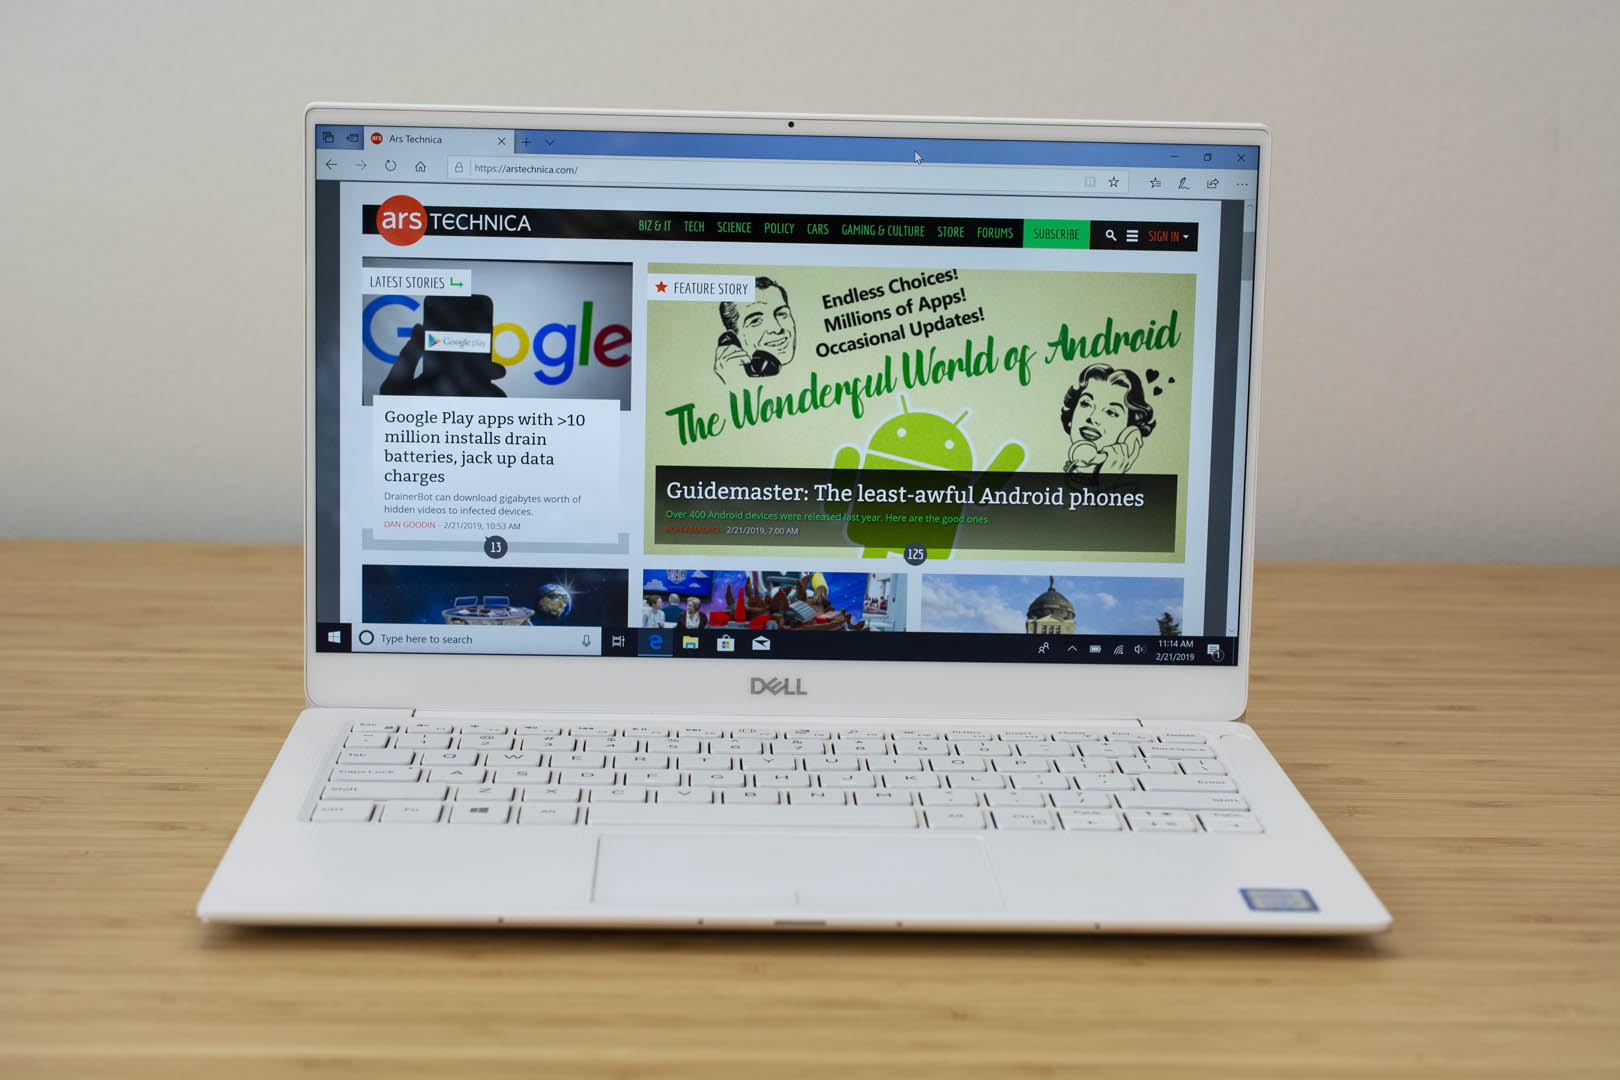 Best Laptop for Pictures And Videos